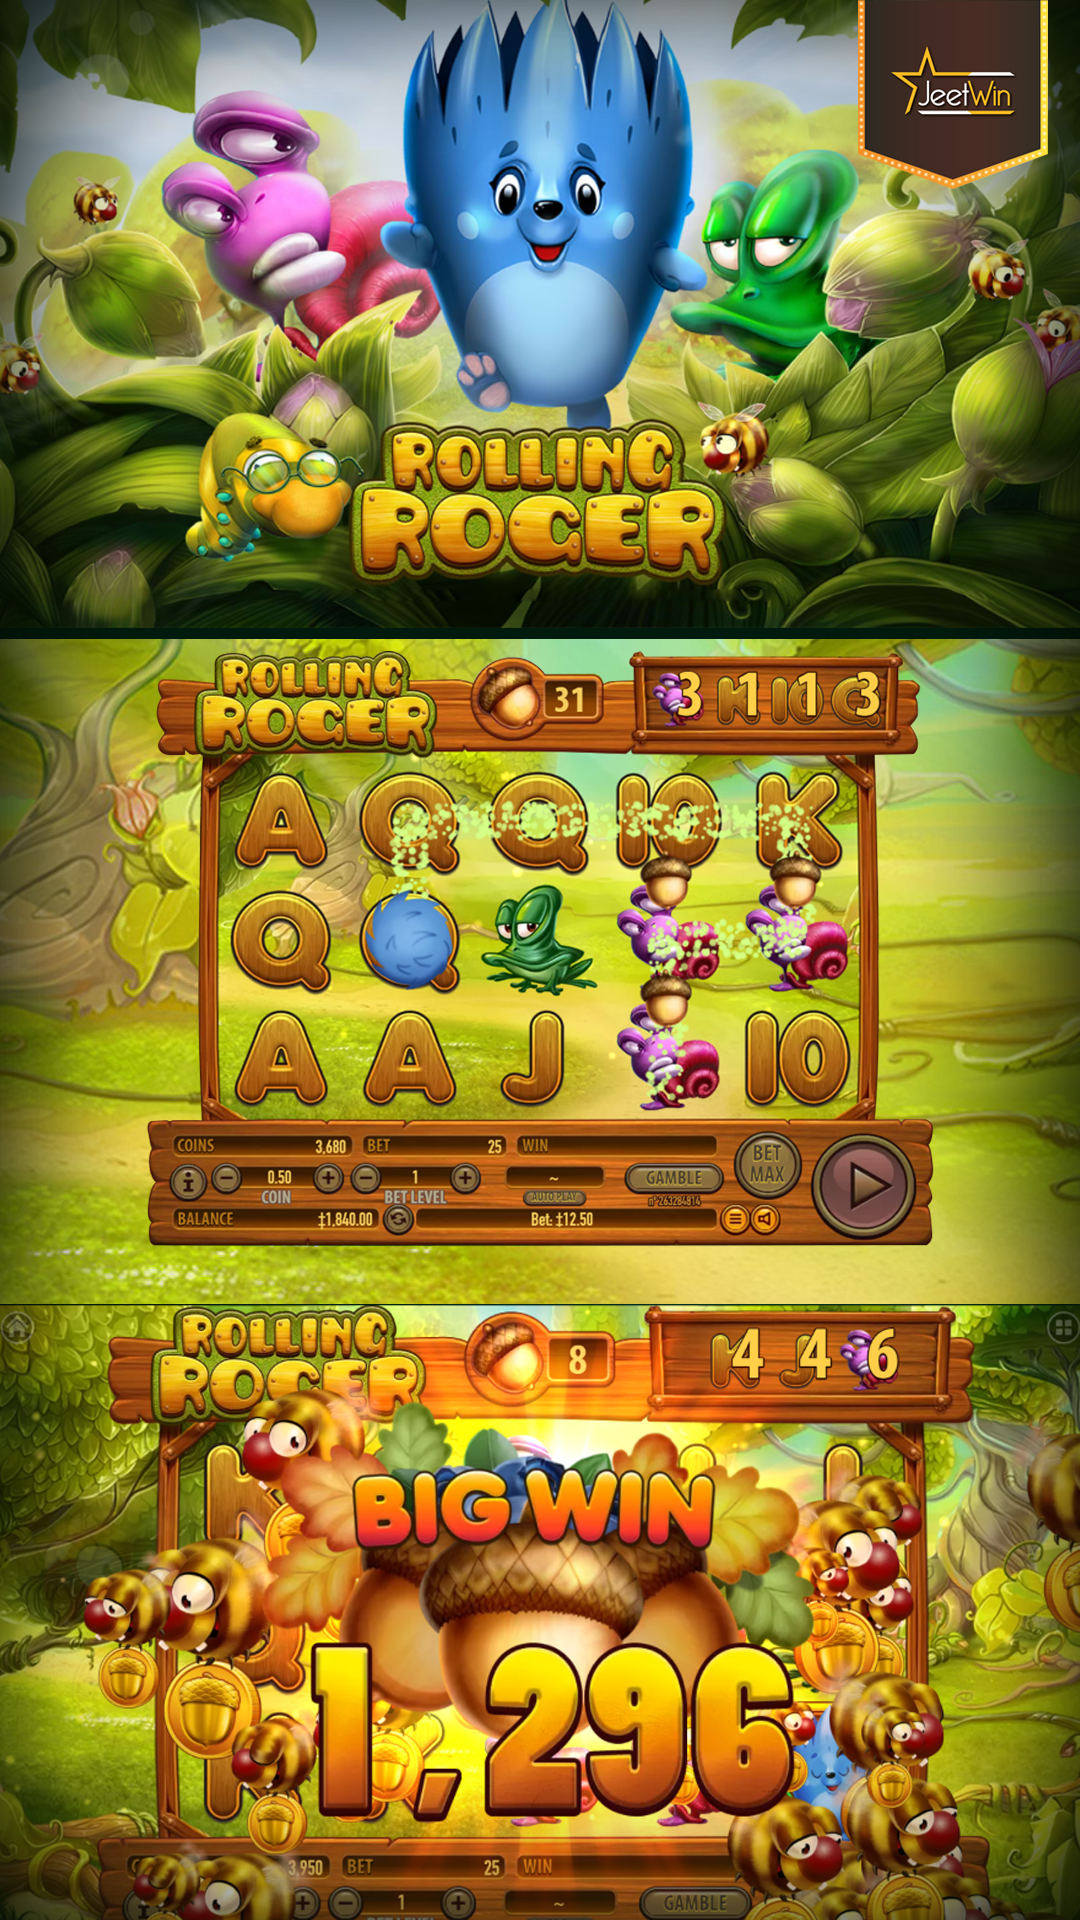 Rolling Roger Slot Game Keep Rolling And Keep Winning Play And